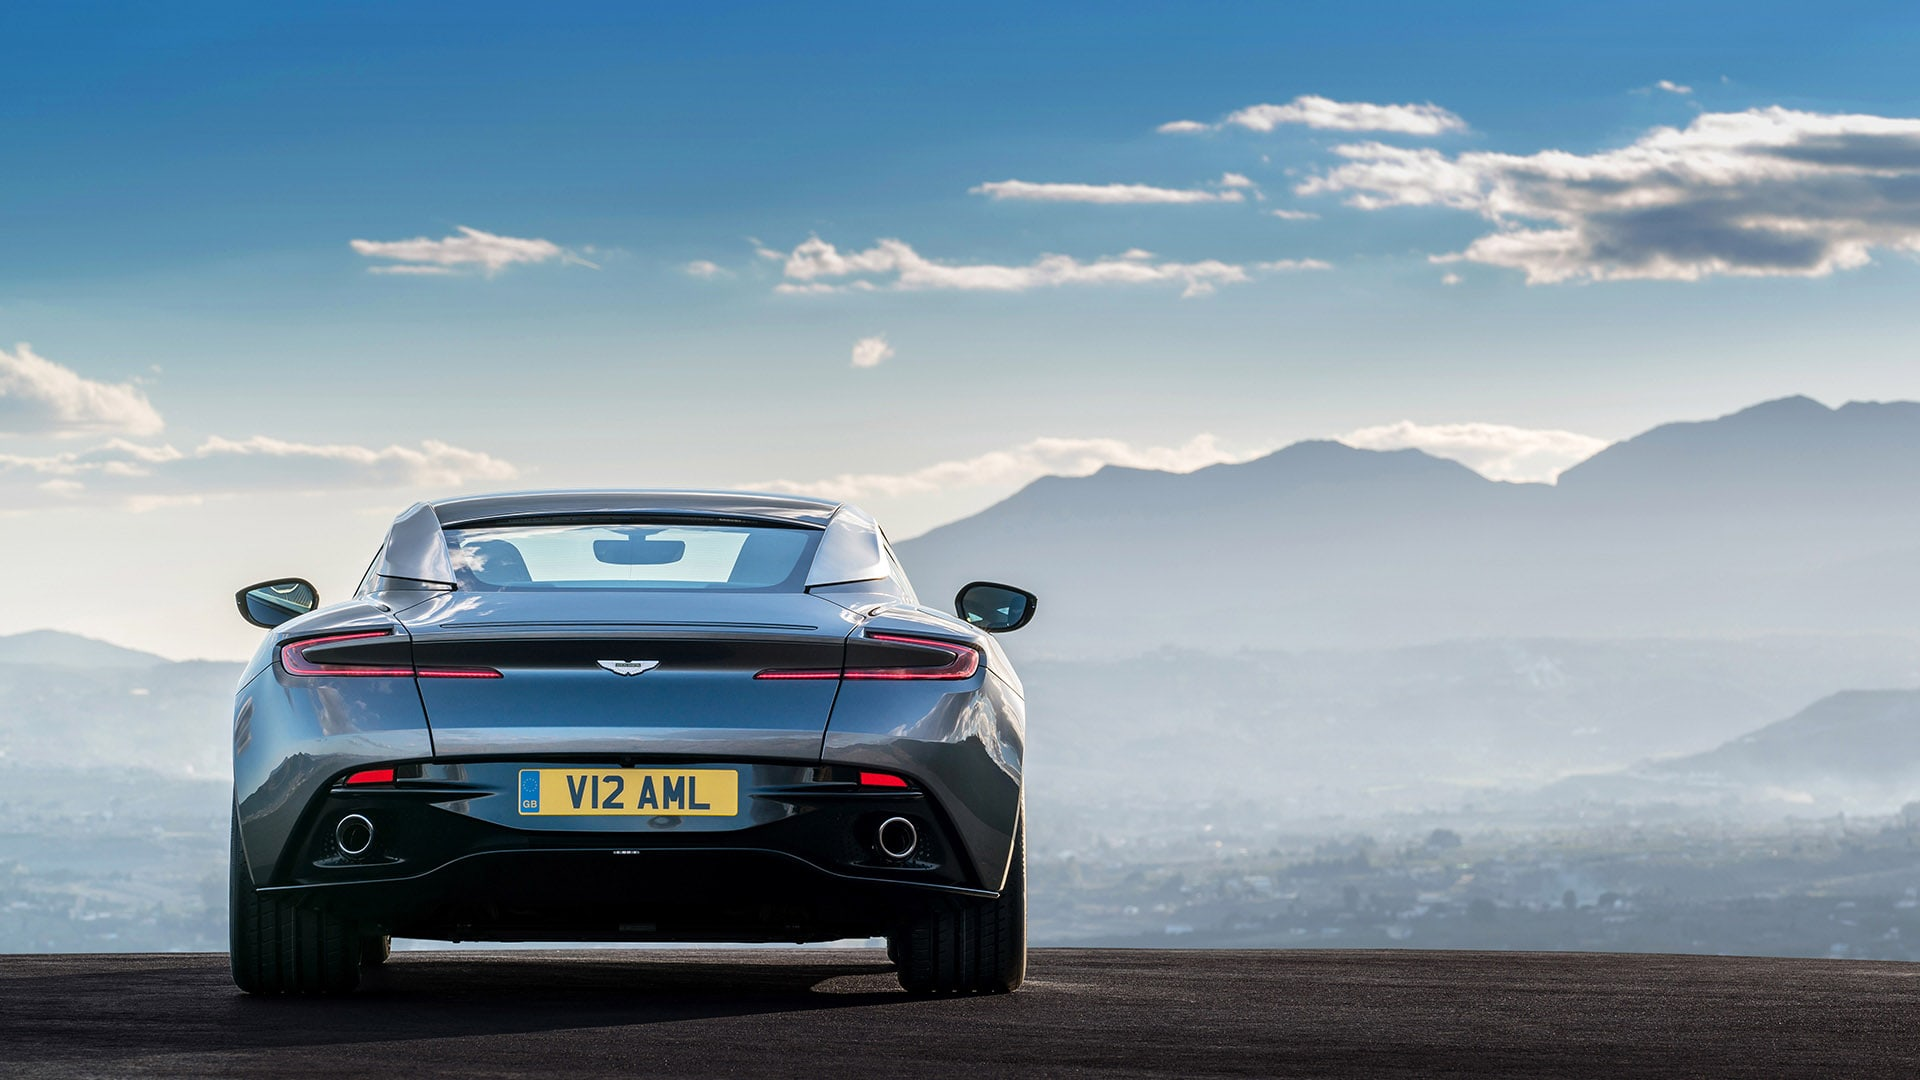 aston martin db11 hd desktop wallpapers | 7wallpapers